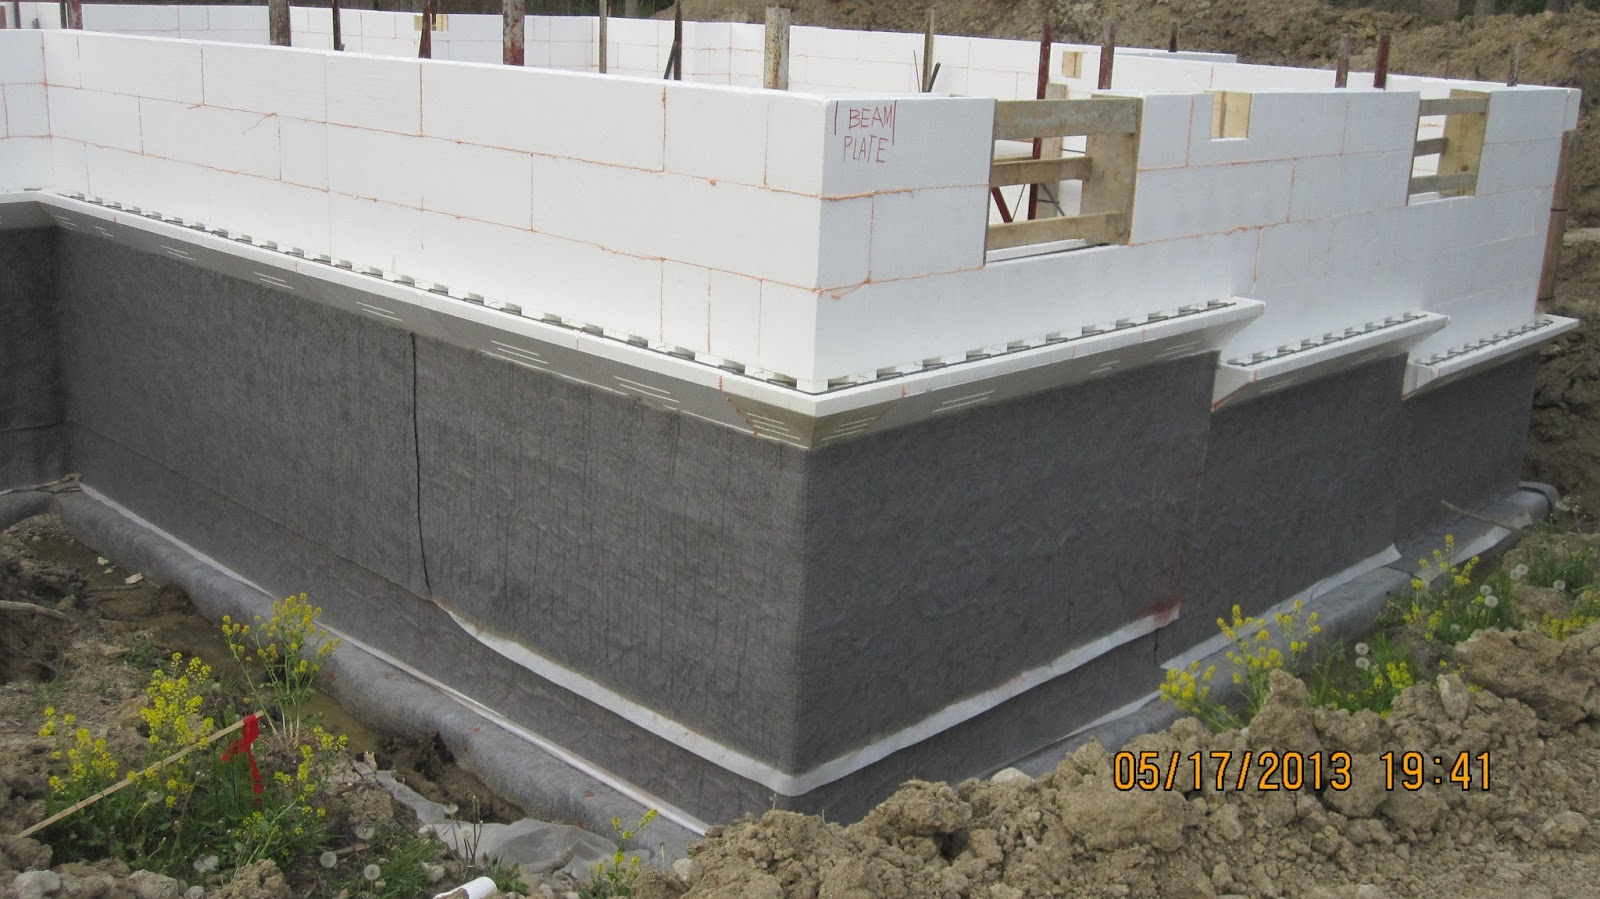 Gloalblock all foam icf buildblock basement rental 1 bhk for Basement forms